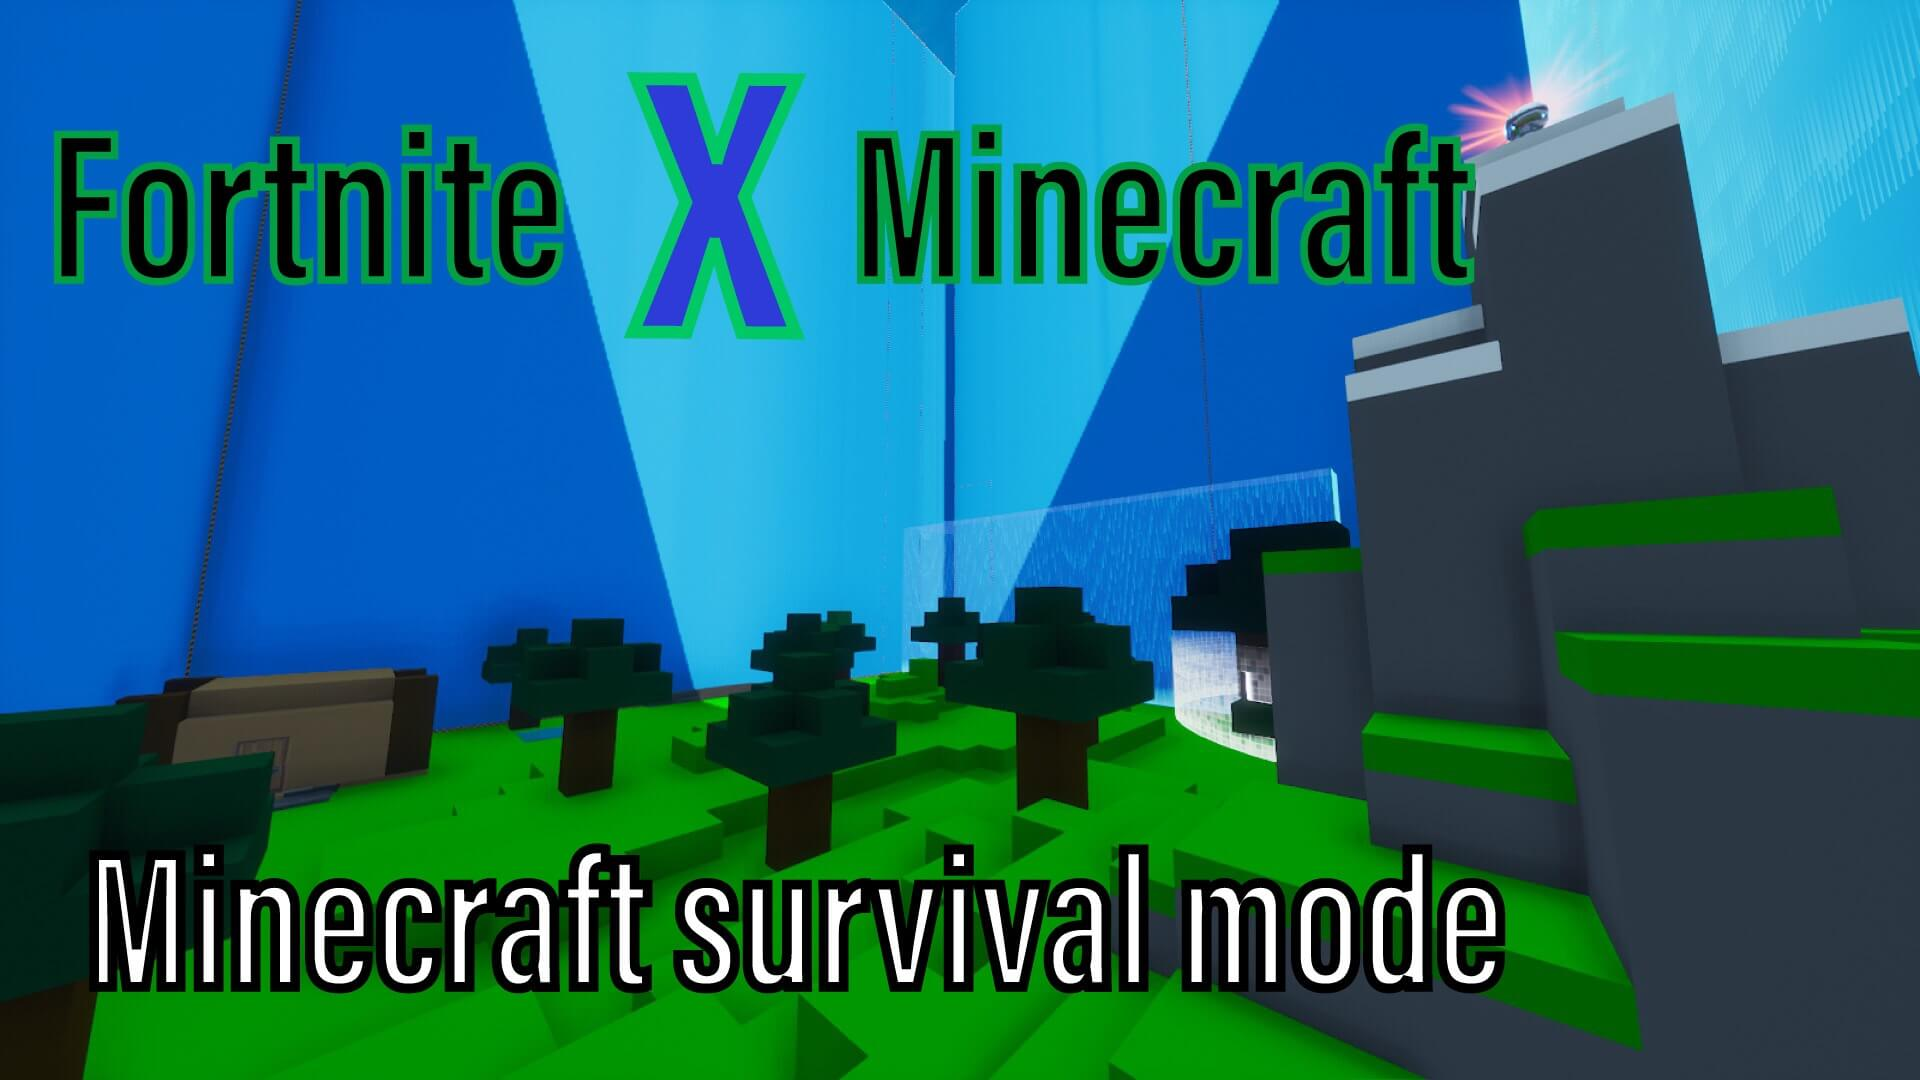 MINECRAFT SURVIVAL MODE